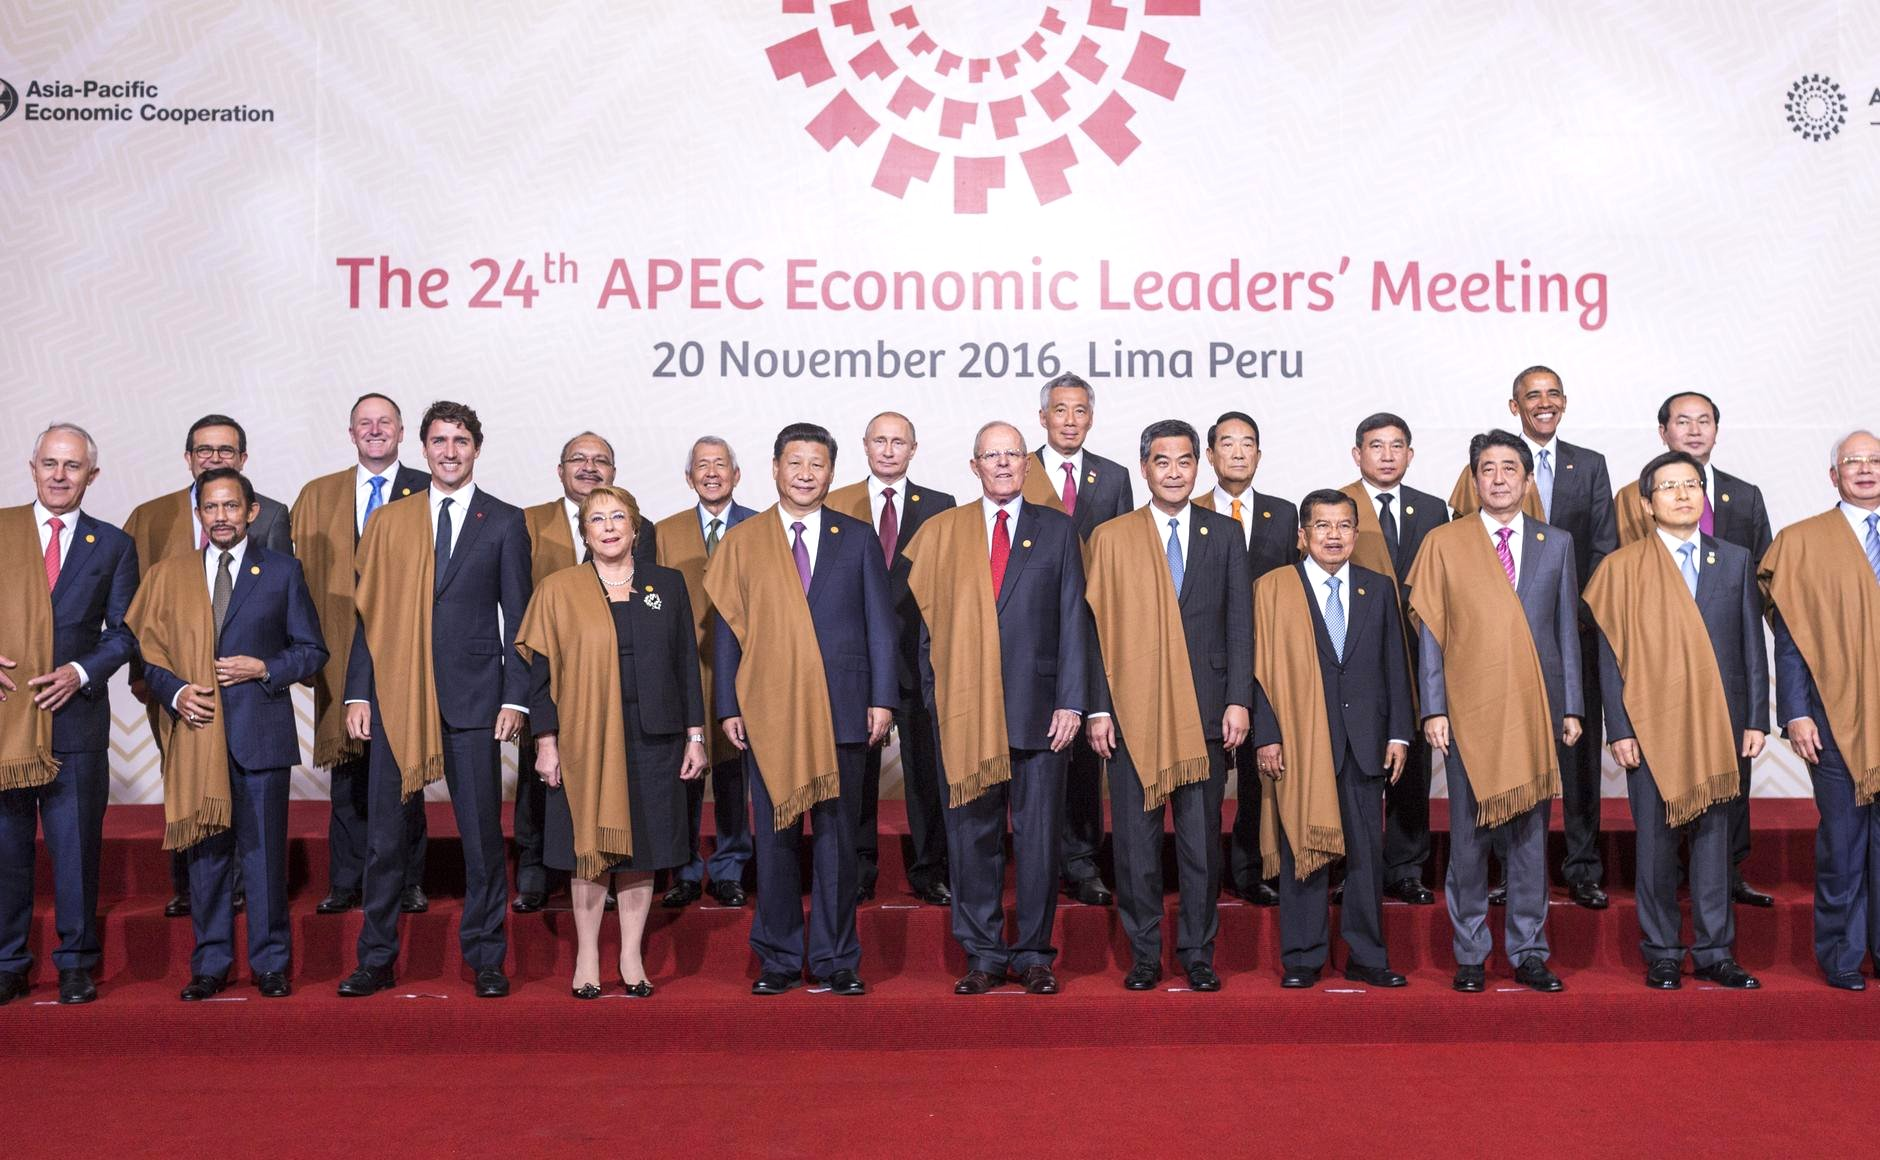 The leaders of the Asia-Pacific Economic Cooperation forum.